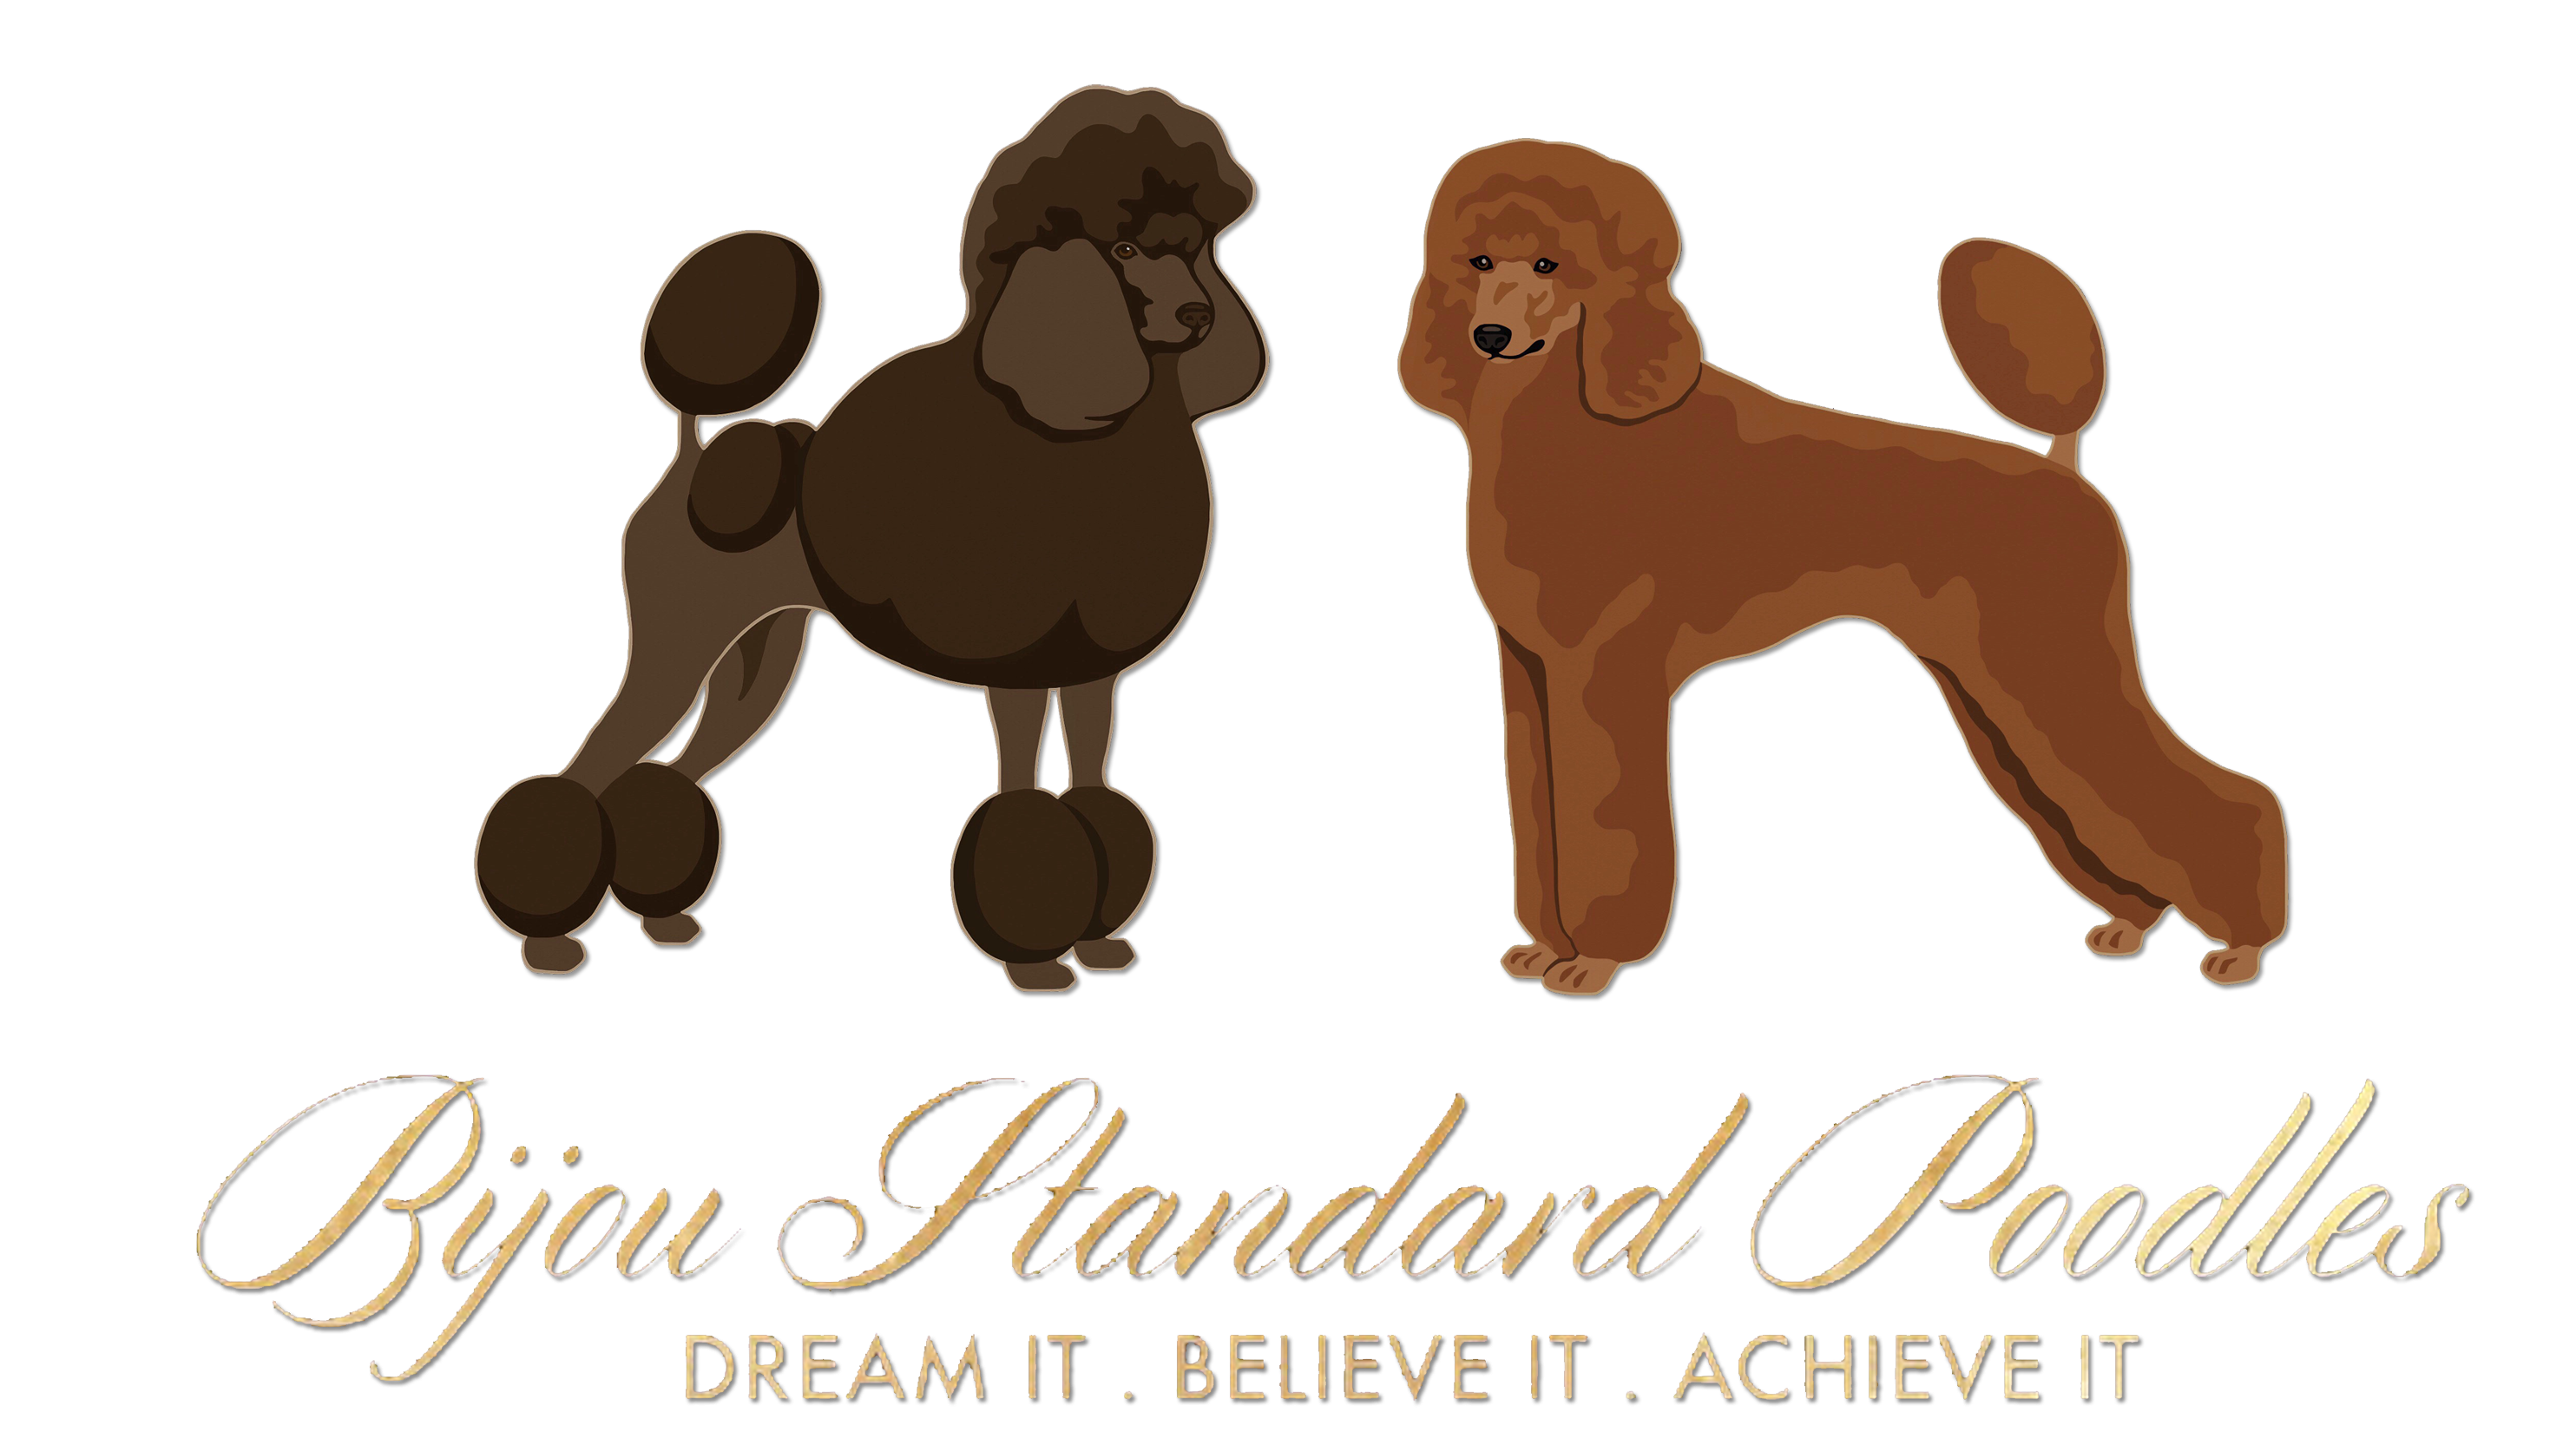 Hershey Thumbnail Poodles Poodle Grooming Poodle Puppies For Sale Poodle